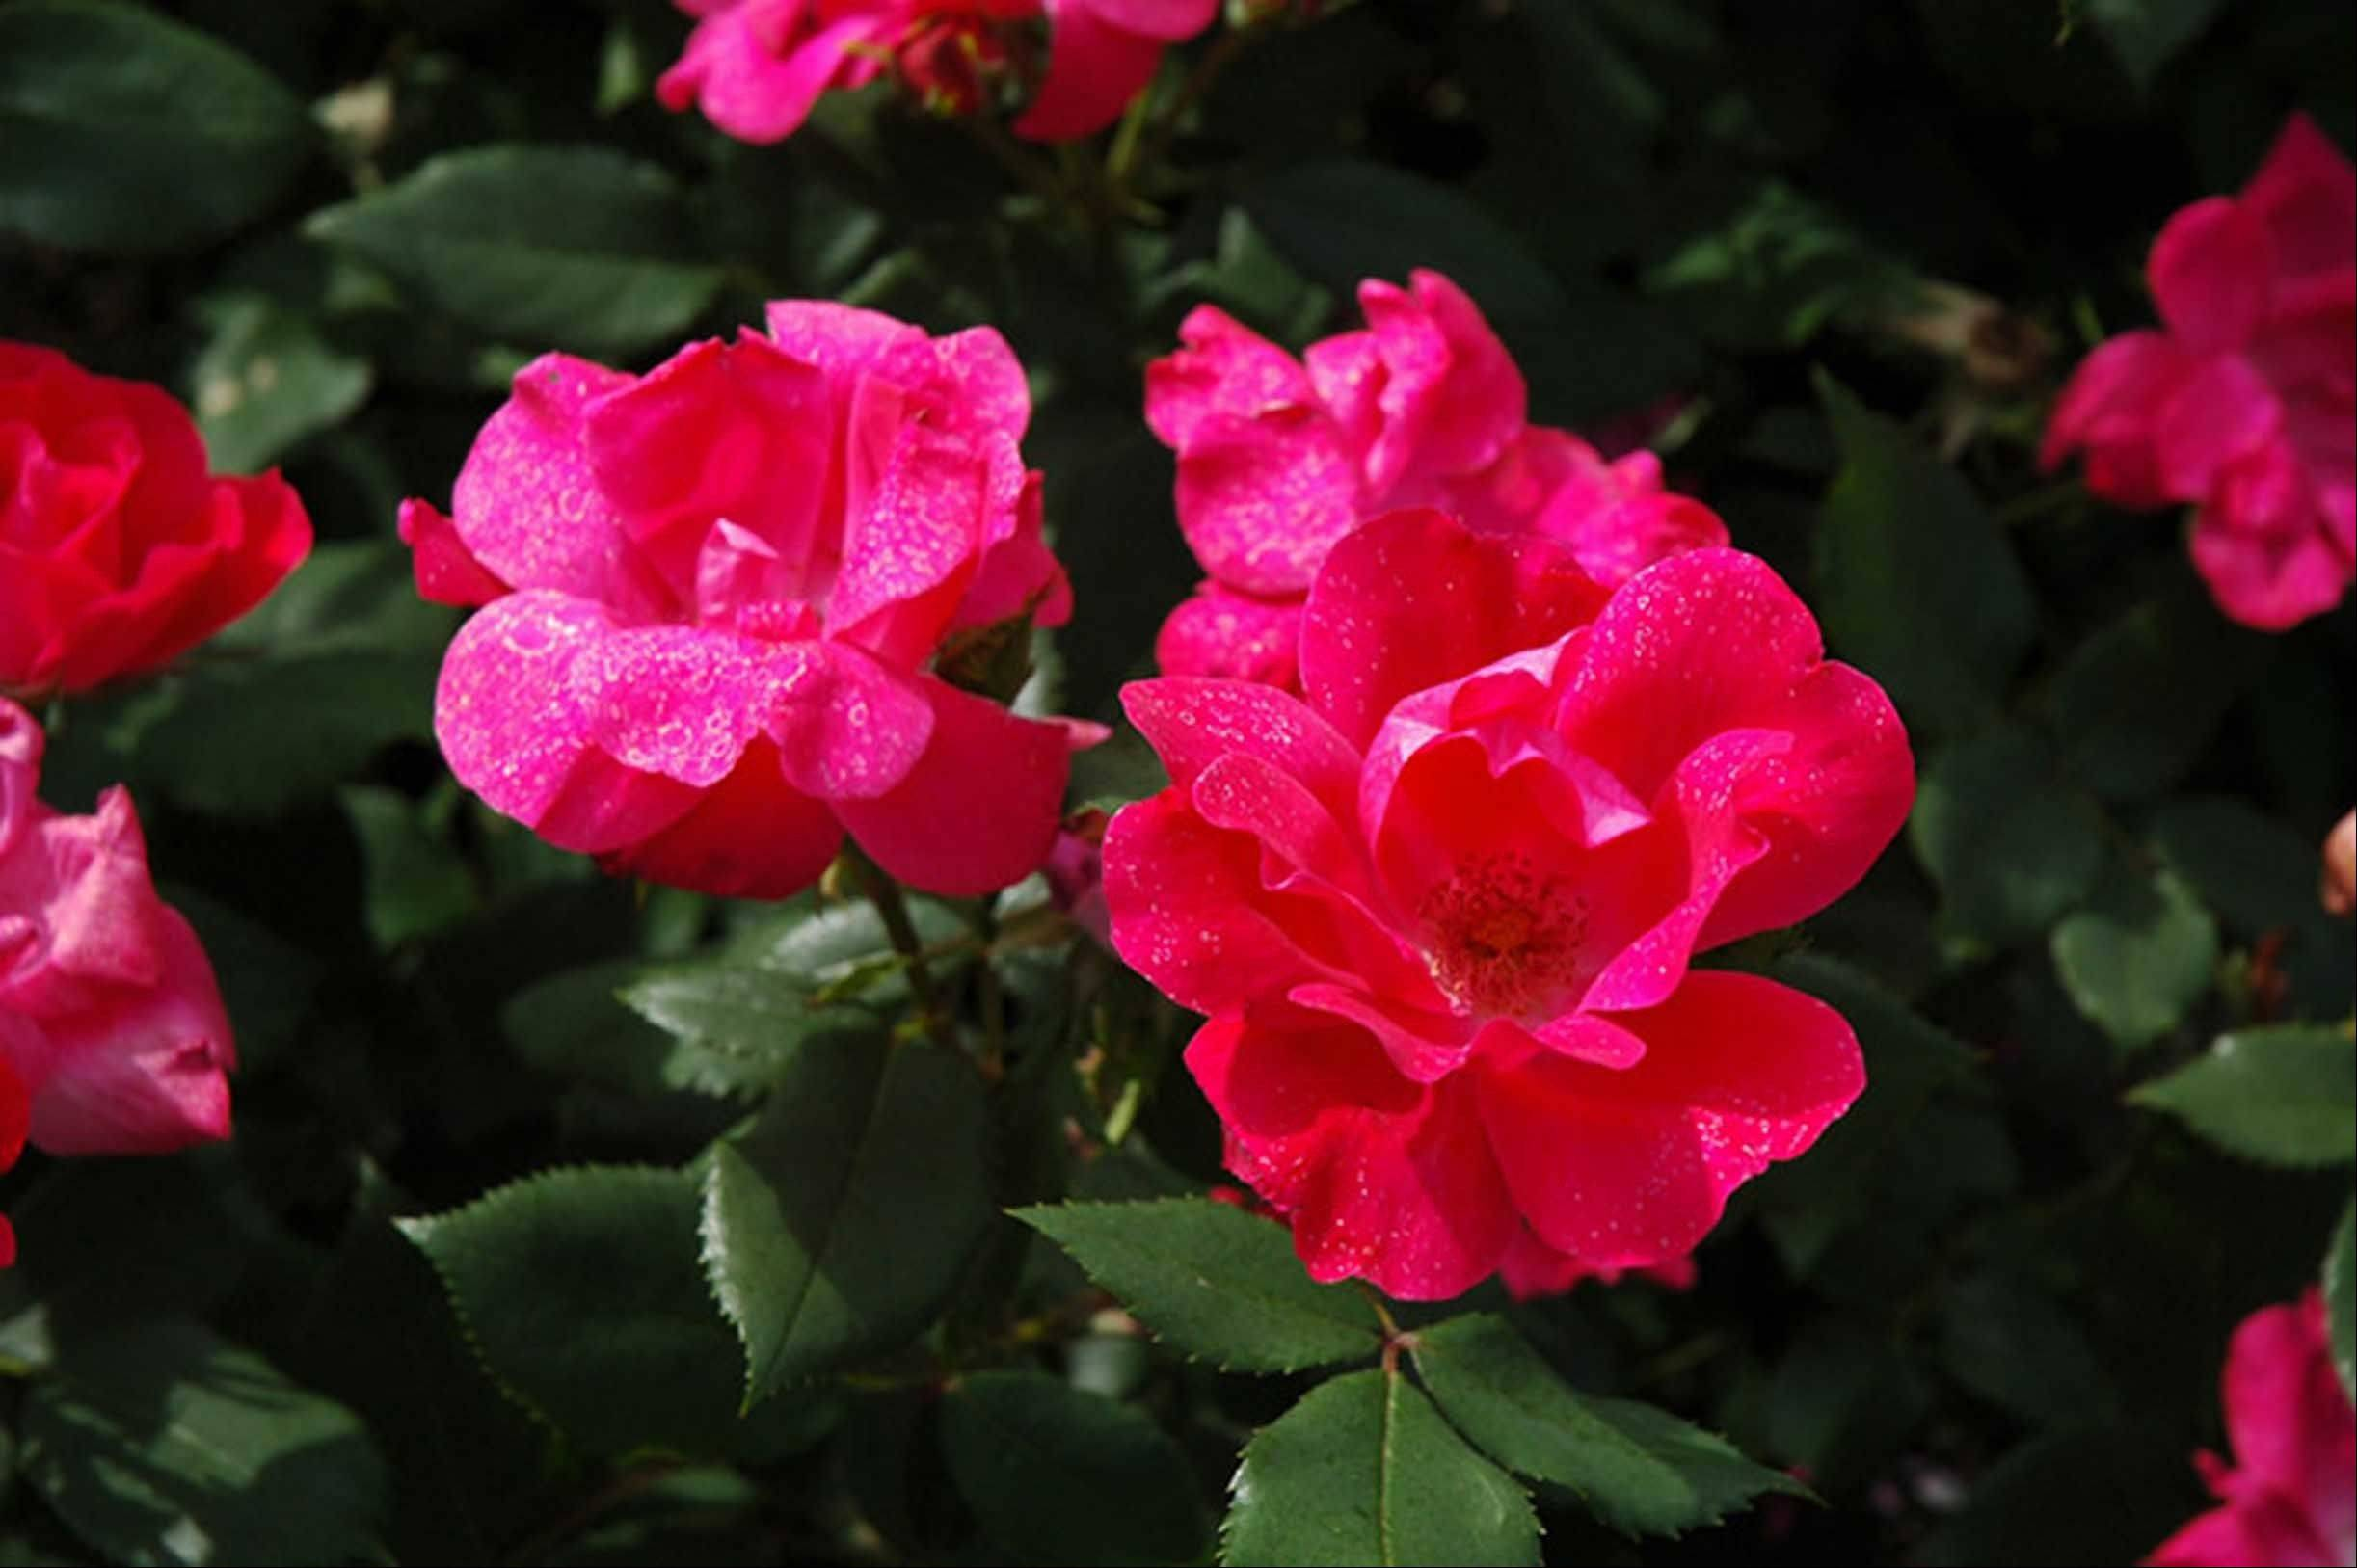 Knock Out Roses can help give a layered look to a landscape design.